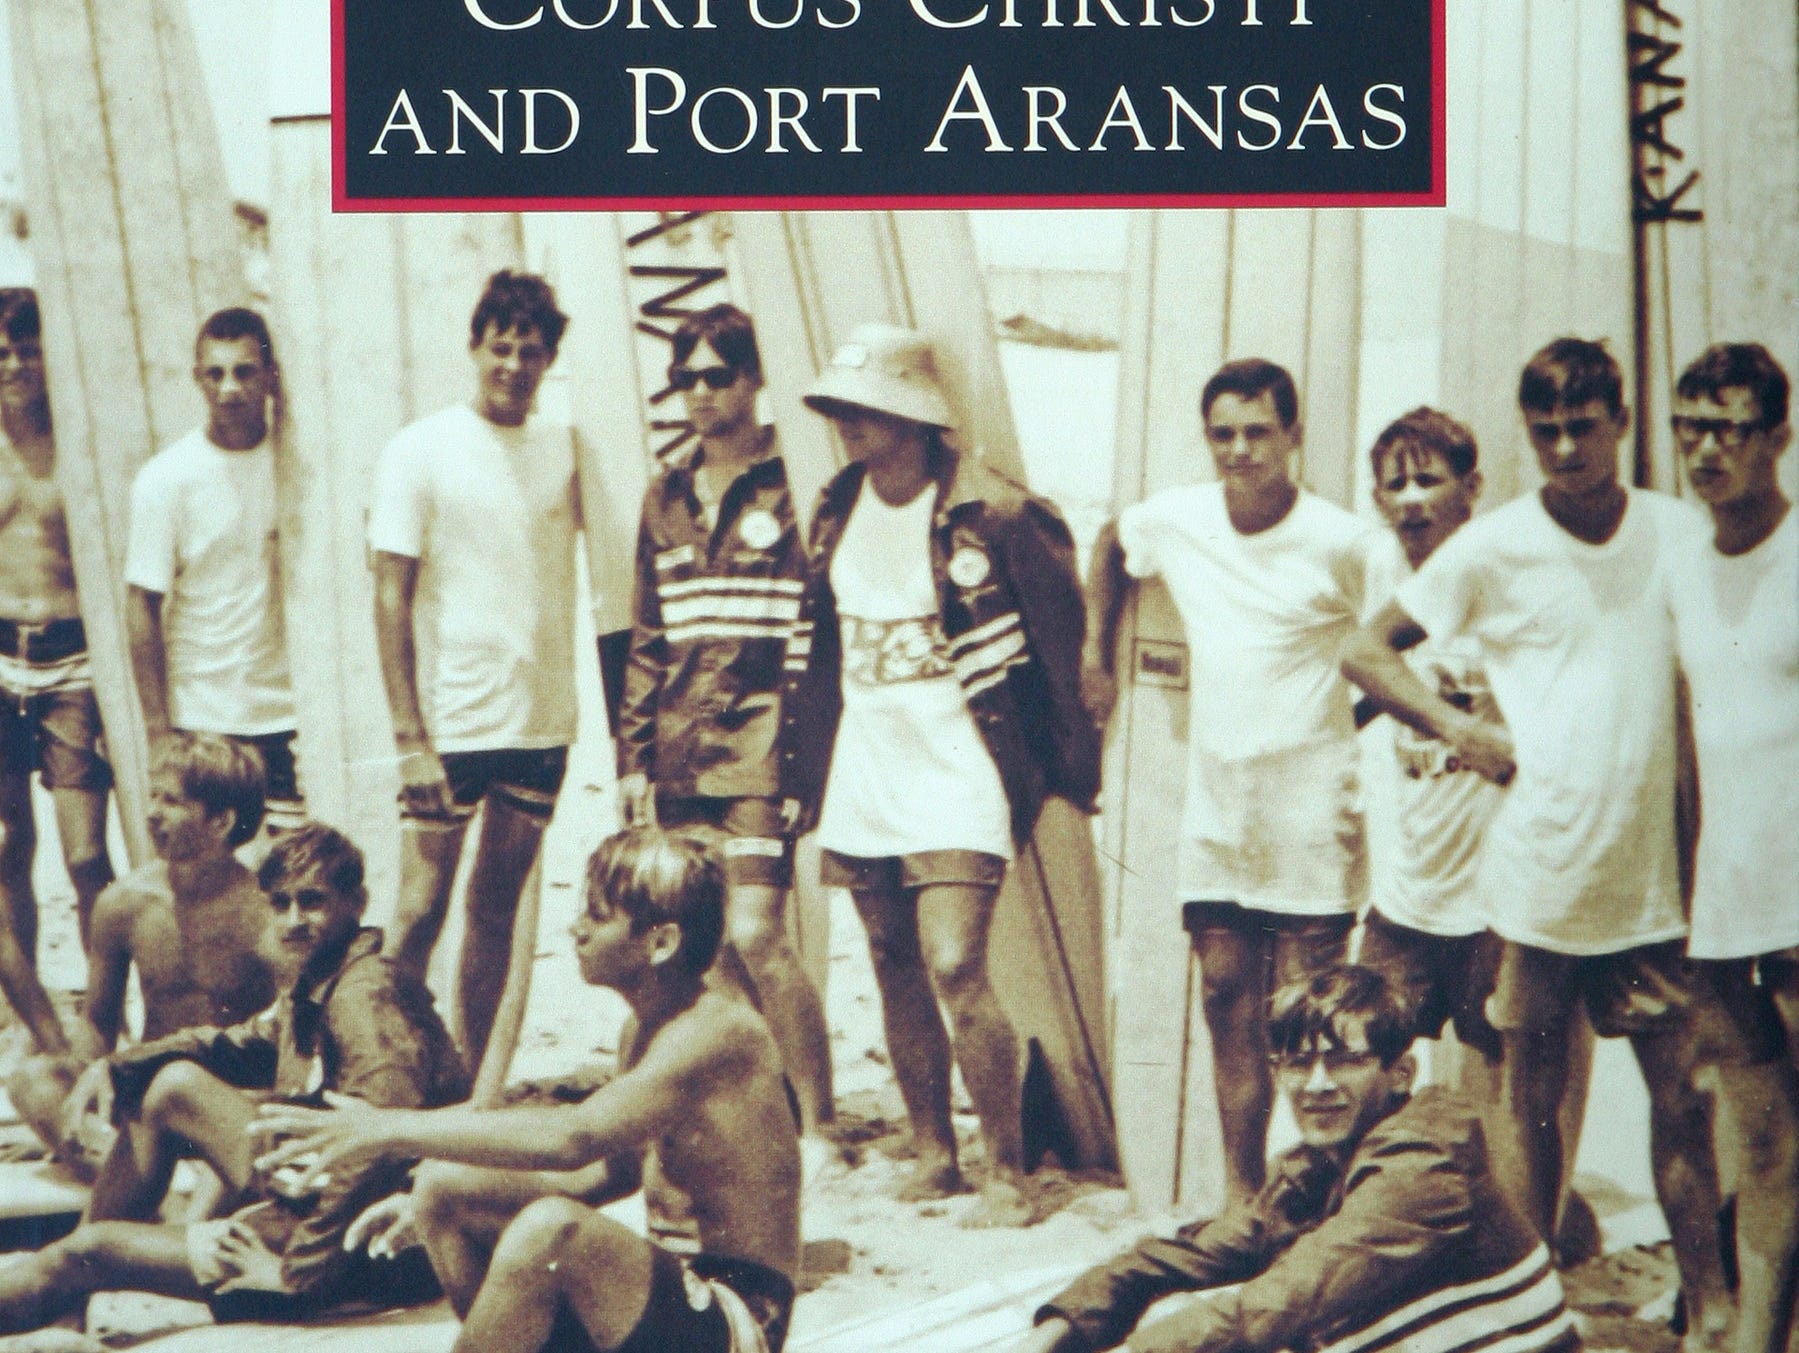 "Learn more about the origins of the Corpus Christi and Port Aransas surfing scene in the 2010 book ""Surfing Corpus Christi and Port Aransas"" by Dan Parker, Michelle Christenson and the Texas Surf Museum with Arcadia Publishing."